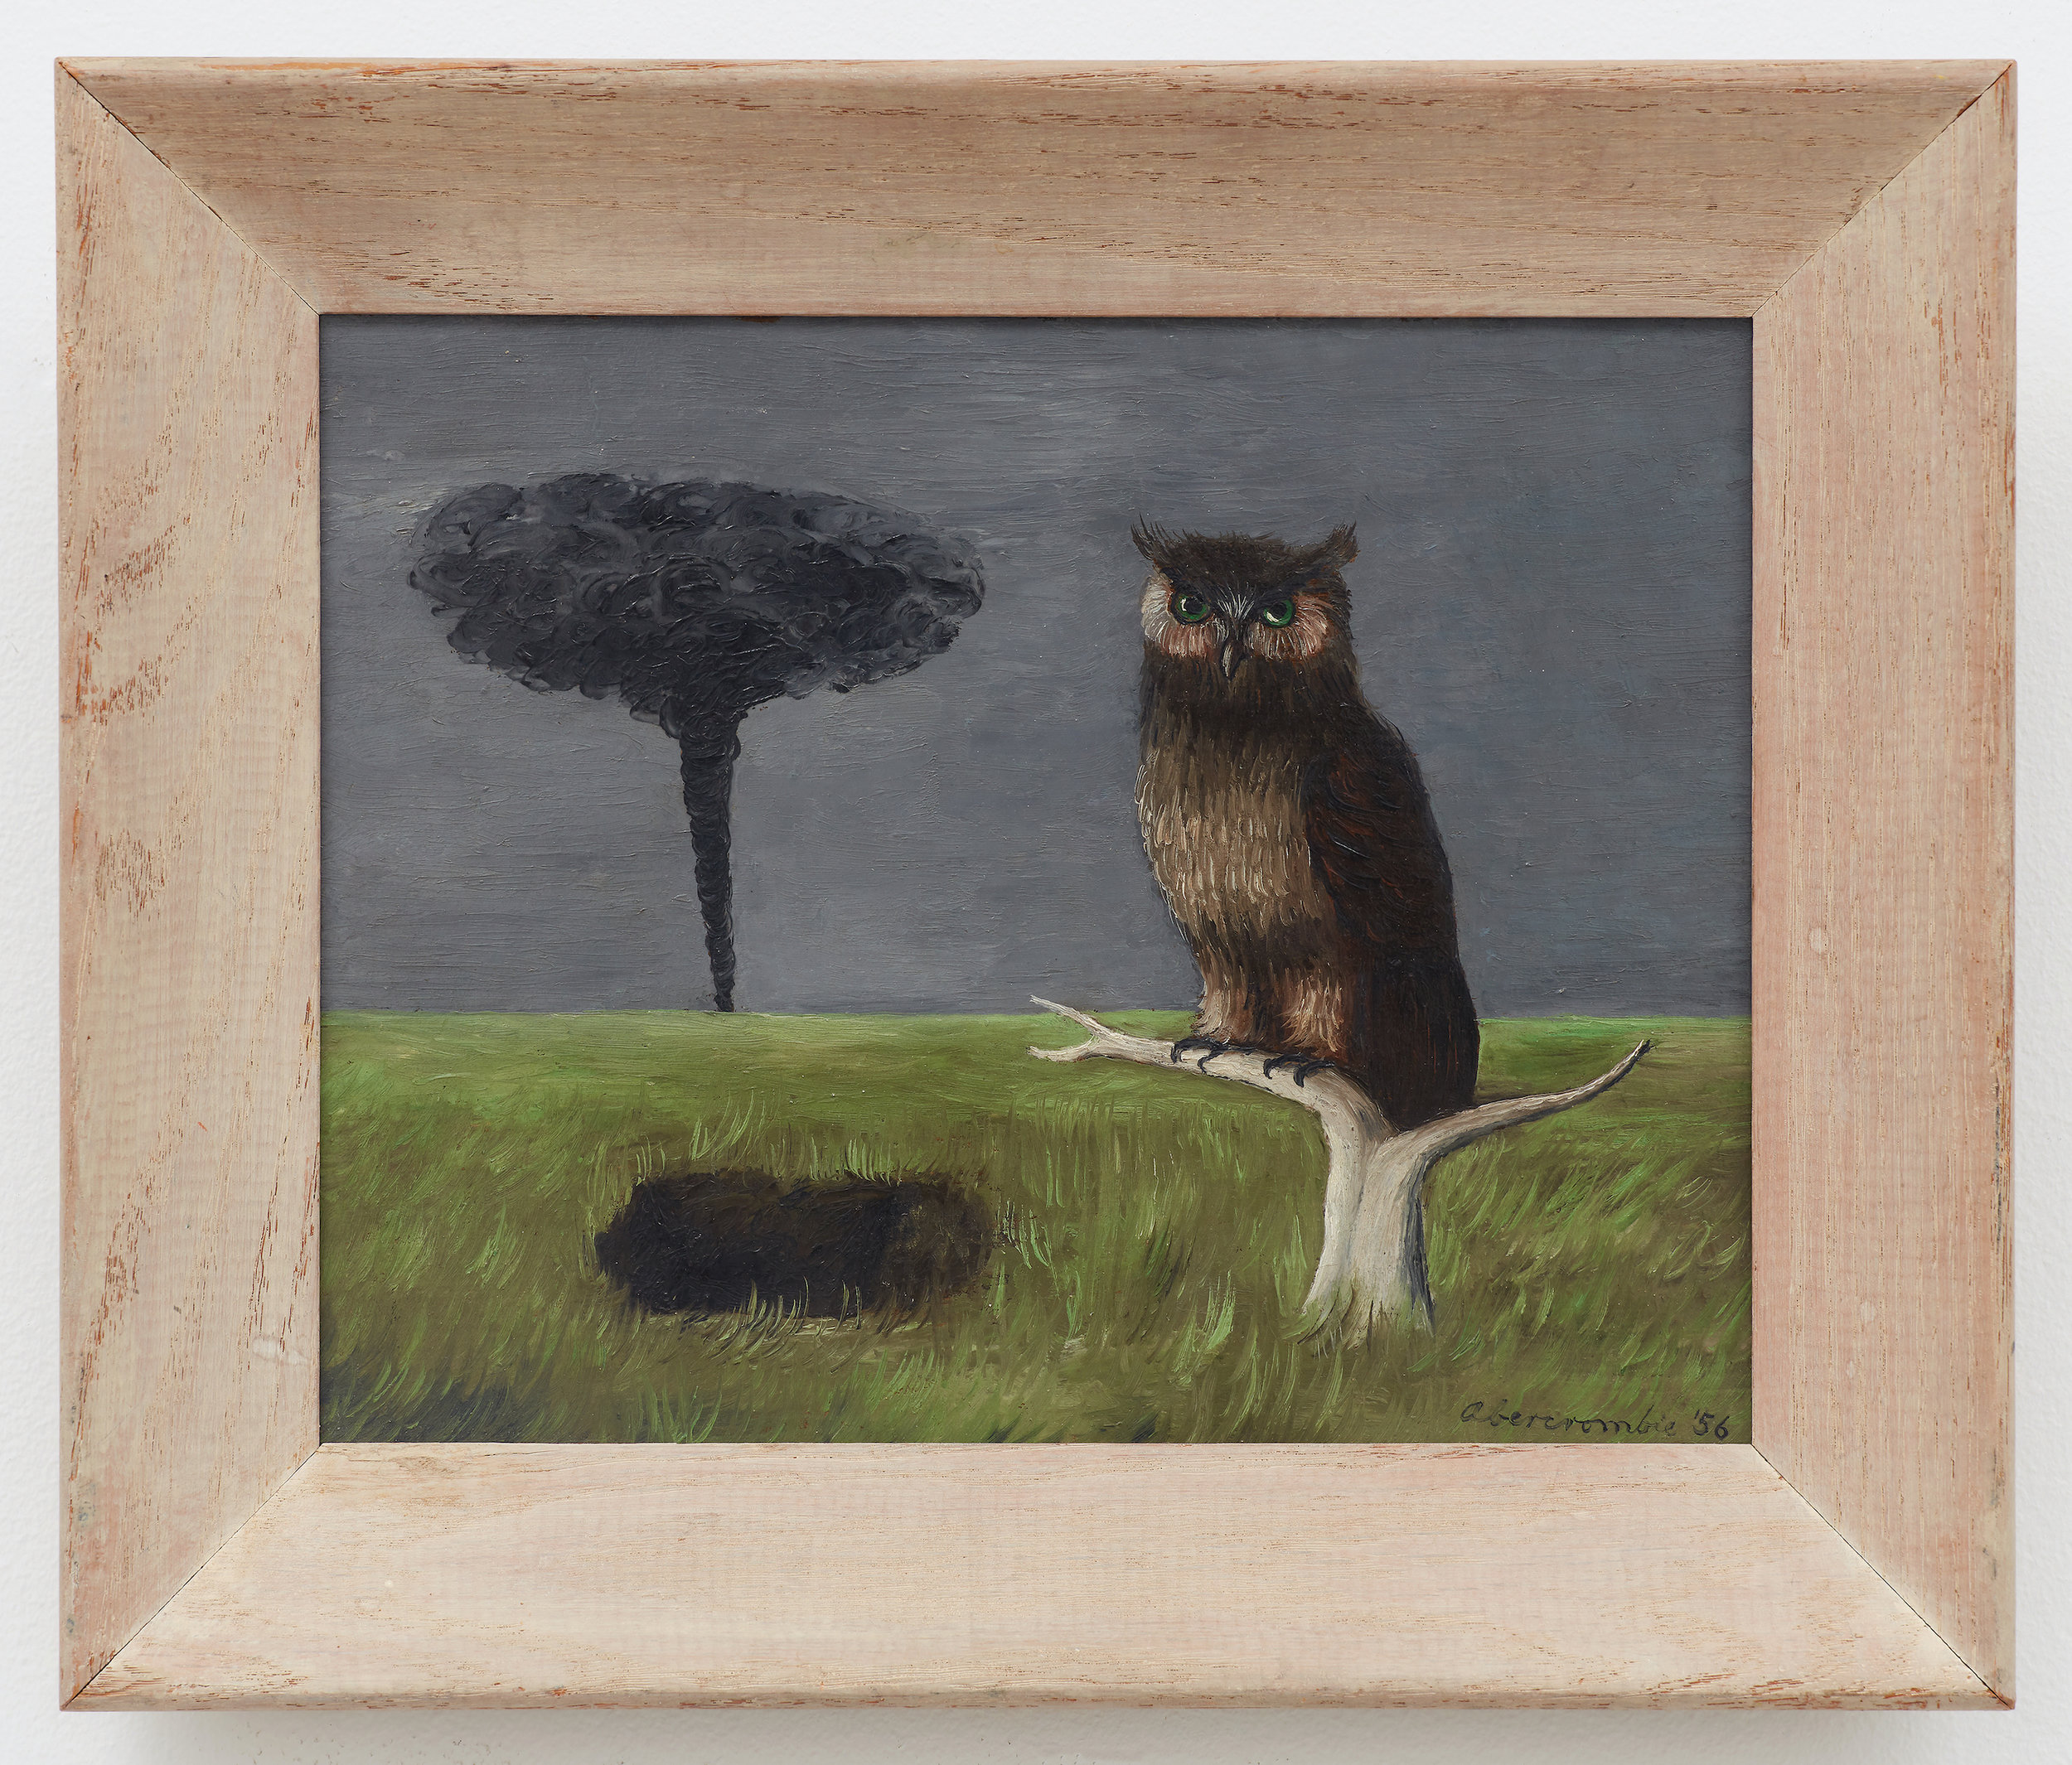 Owl and a Tornado,  1956, Oil on masonite, 7 7/8 × 10 inches (unframed); 10 3/4 × 12 3/4 inches (framed). Collection of Laura and Gary Maurer.